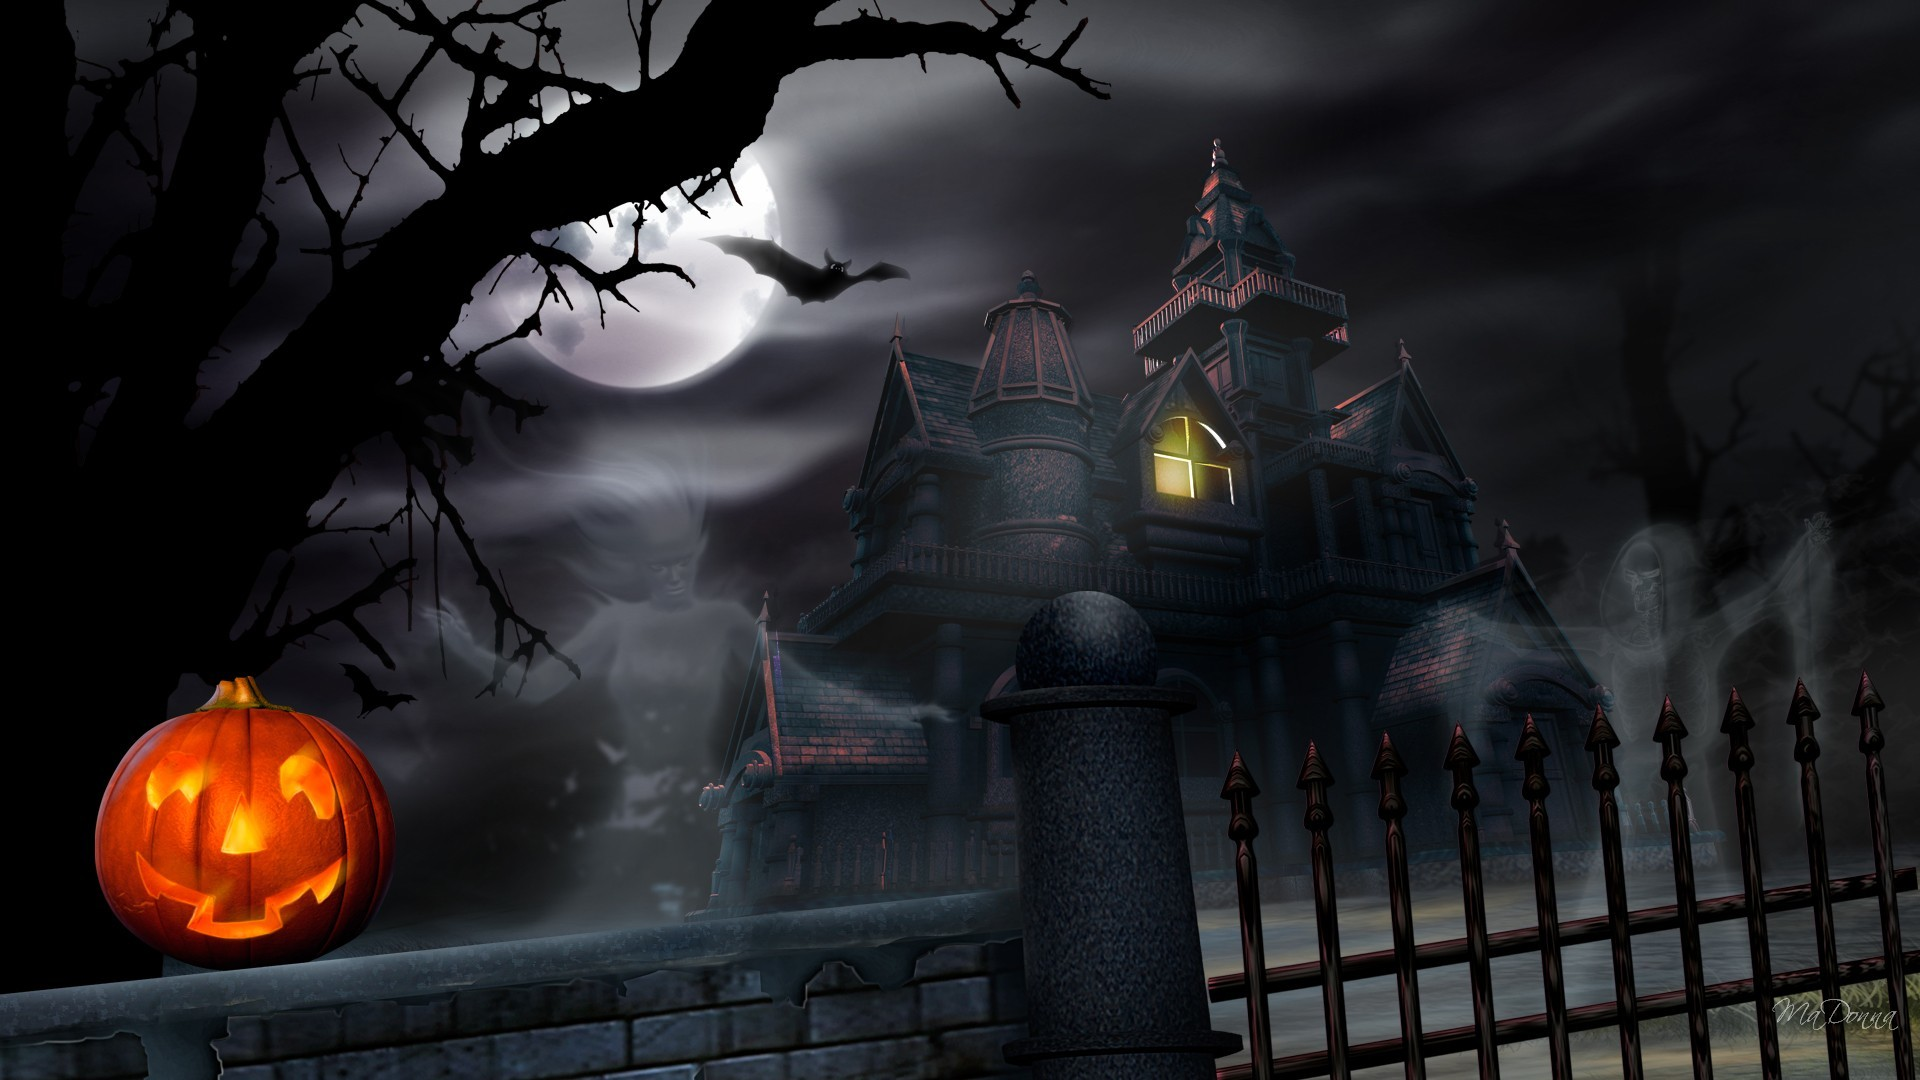 1920x1080 Web Collection; PJO967 Halloween Haunted House, Wall.